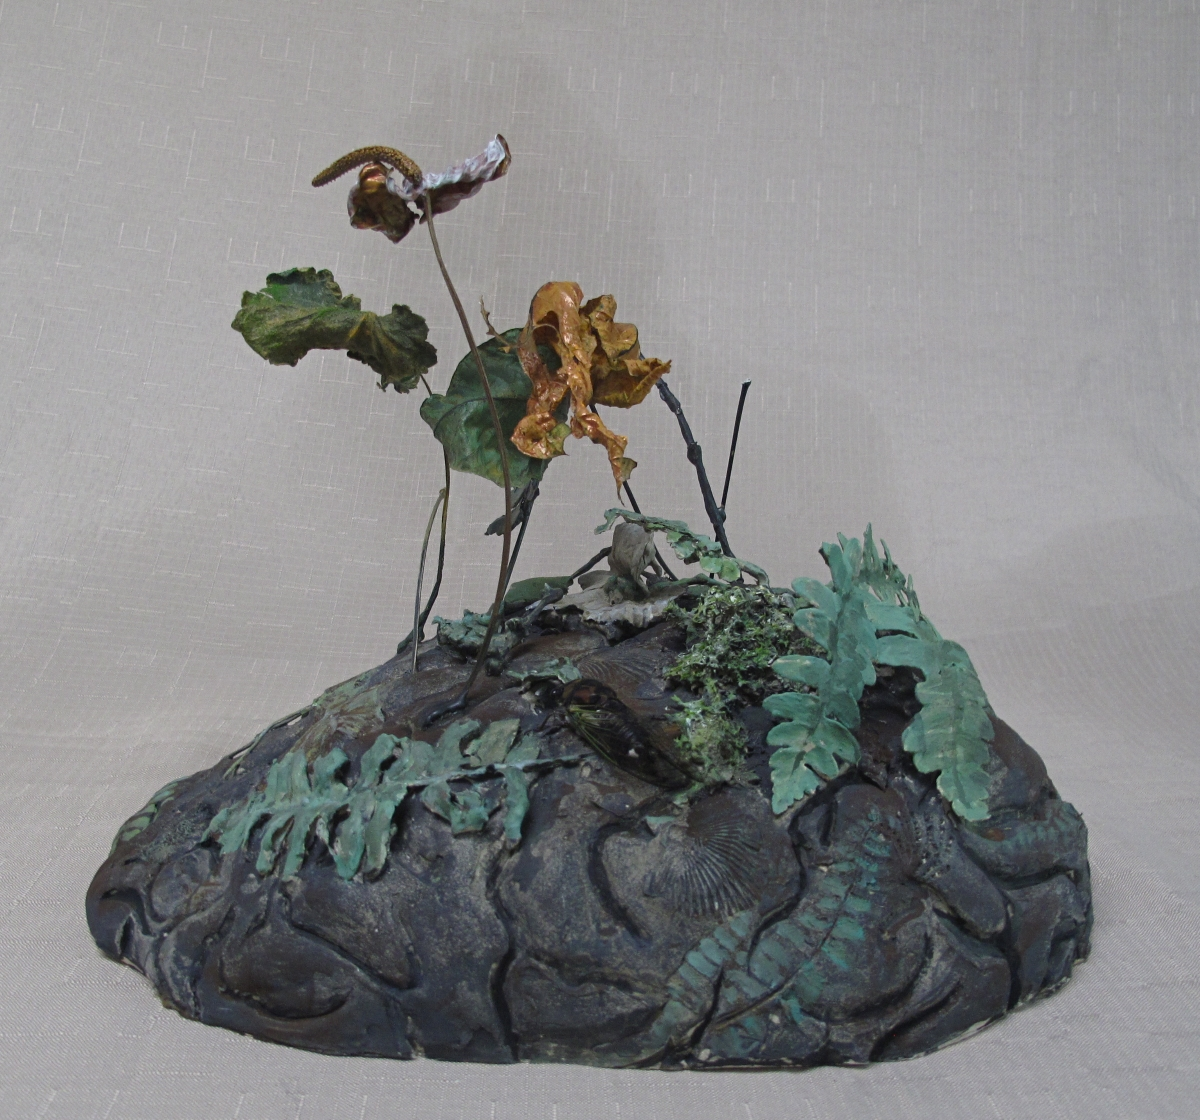 """A ceramic brain is the ground for a botanical landscape sprouting actual dried and ceramic plant forms and a cicada bug.  13""""h. X 15""""l. X 12""""w. in custom plexi display cube. (large view)"""